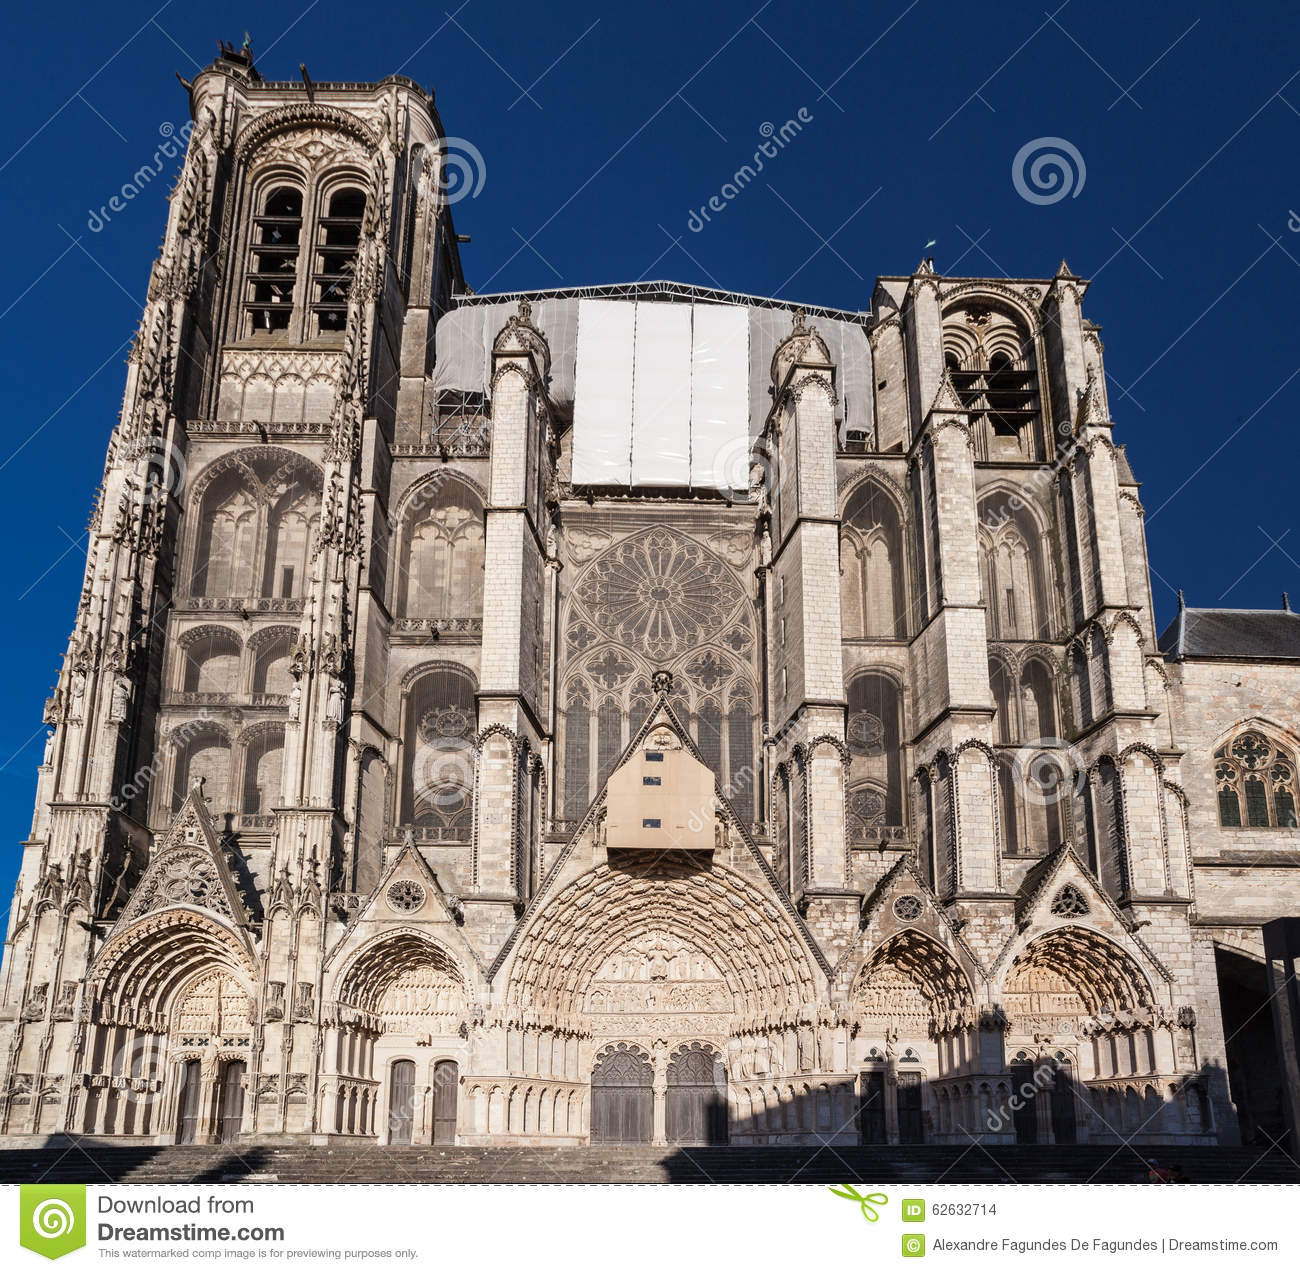 Bourges cathedral france stock photo image of statue 62632714 - Stock industriel bourges ...